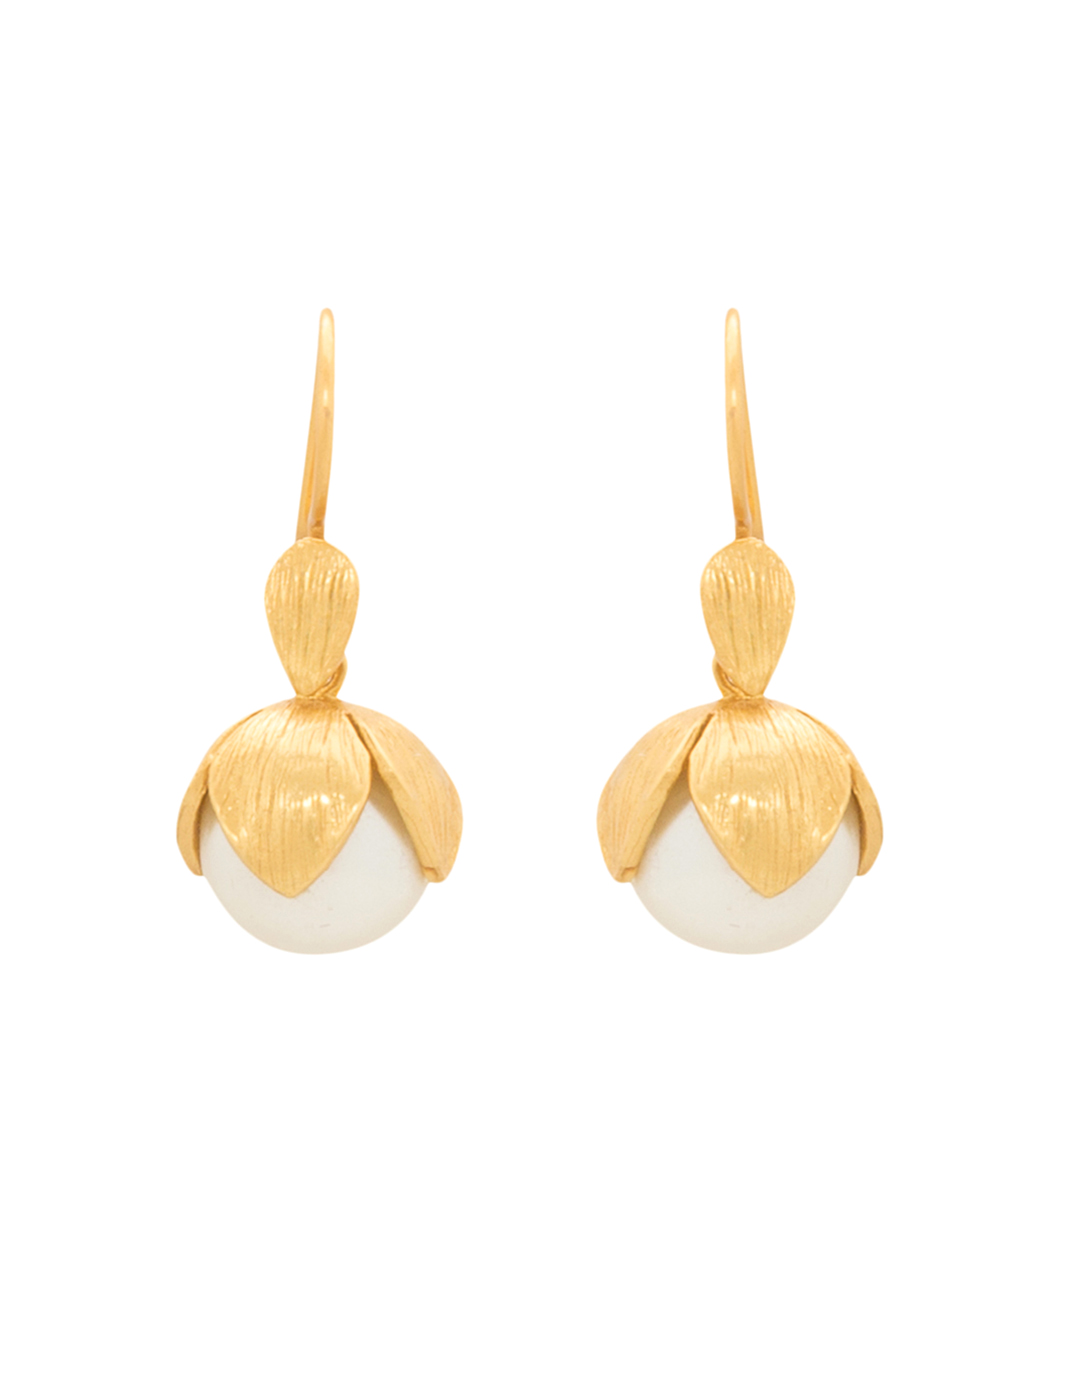 A piece of jewelry that catches the eye and adds interest to any outfit.  Julie Vos Penelope Gold Shell Pearl Earring, $148.